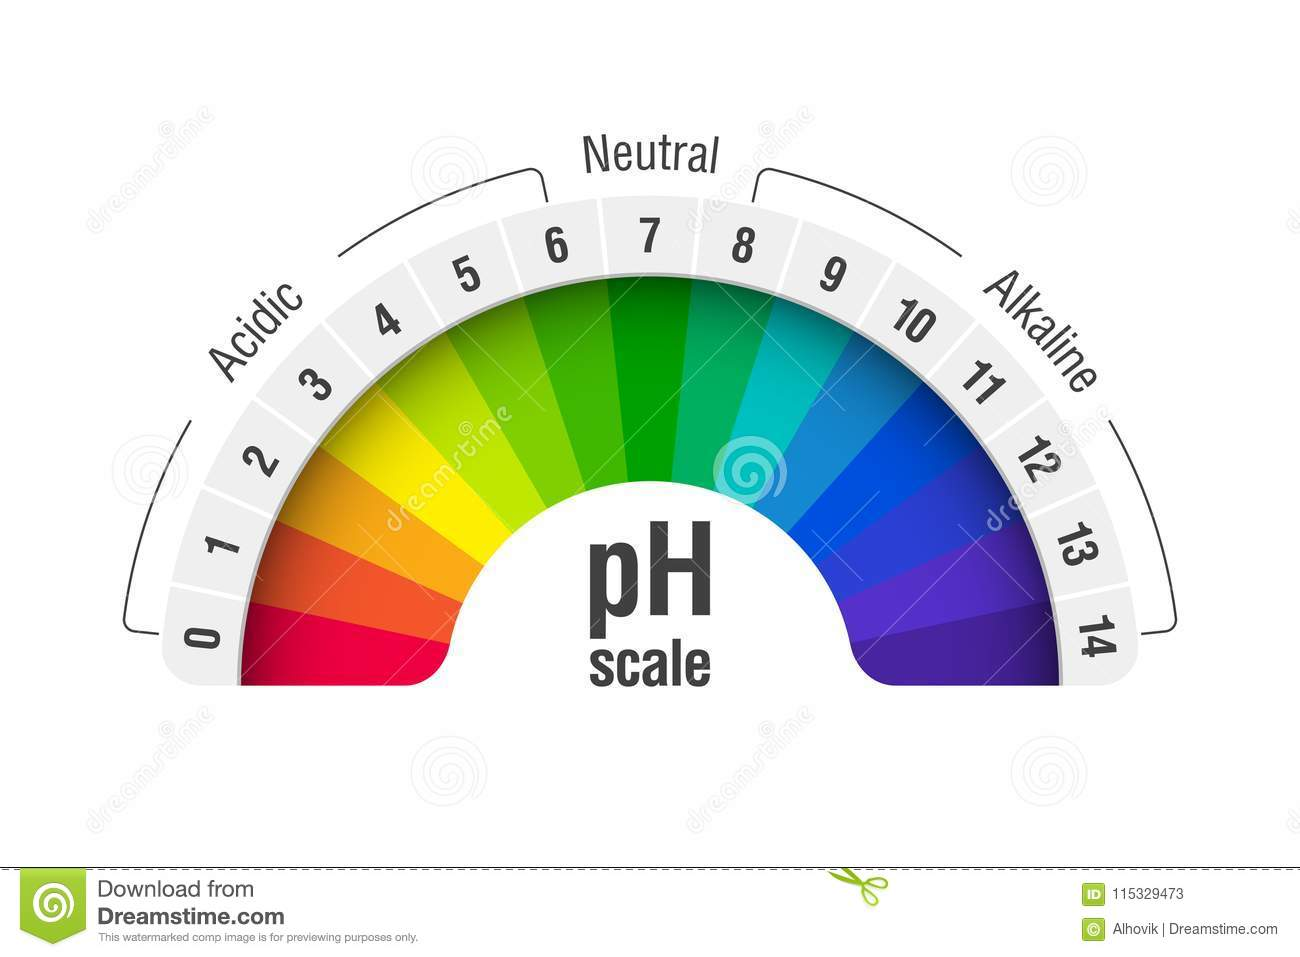 PH value scale chart